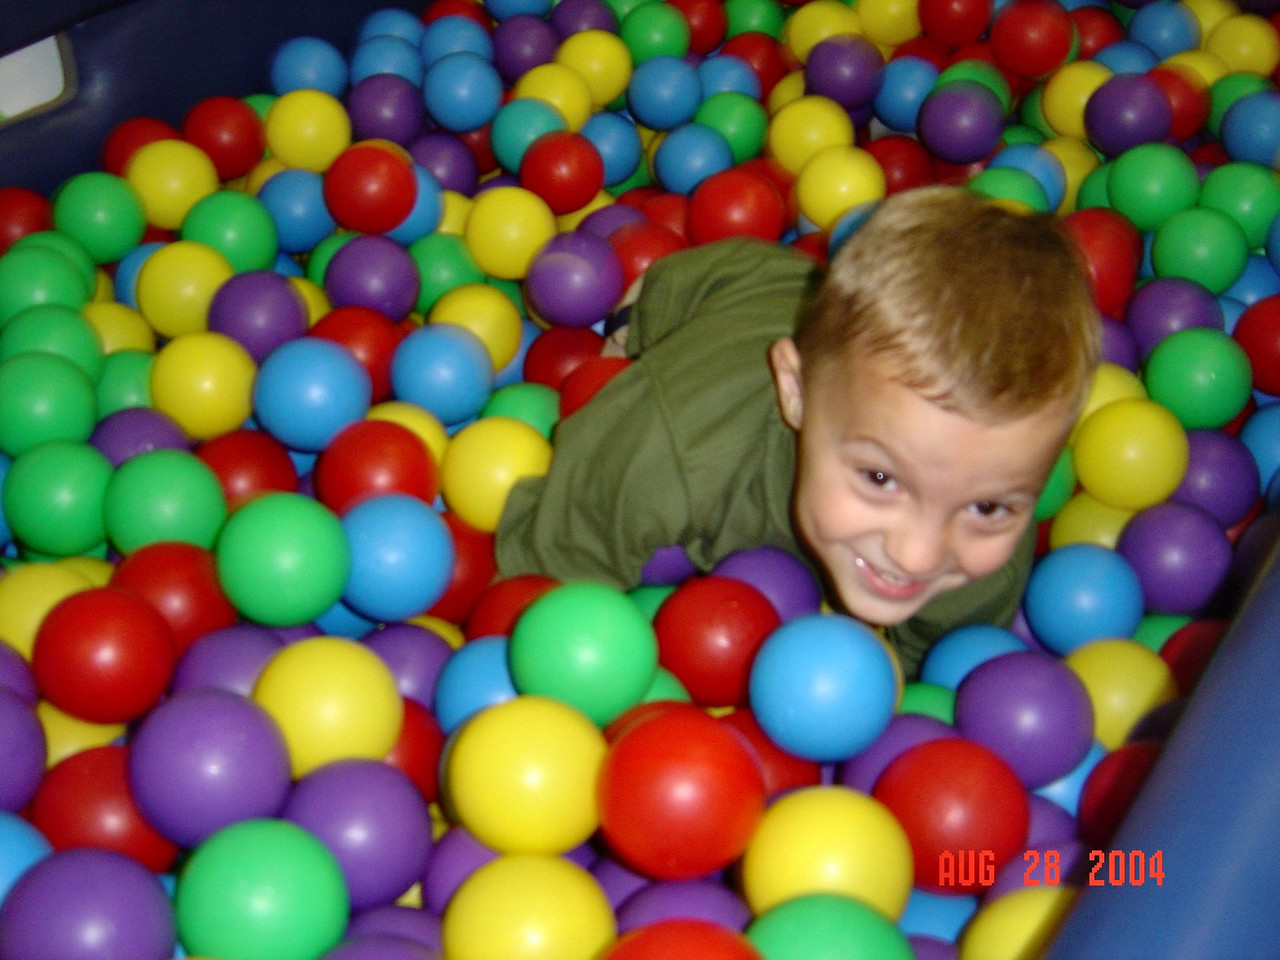 Ty_plays_in_the_balls_at_Natalie's_party_08-28-04